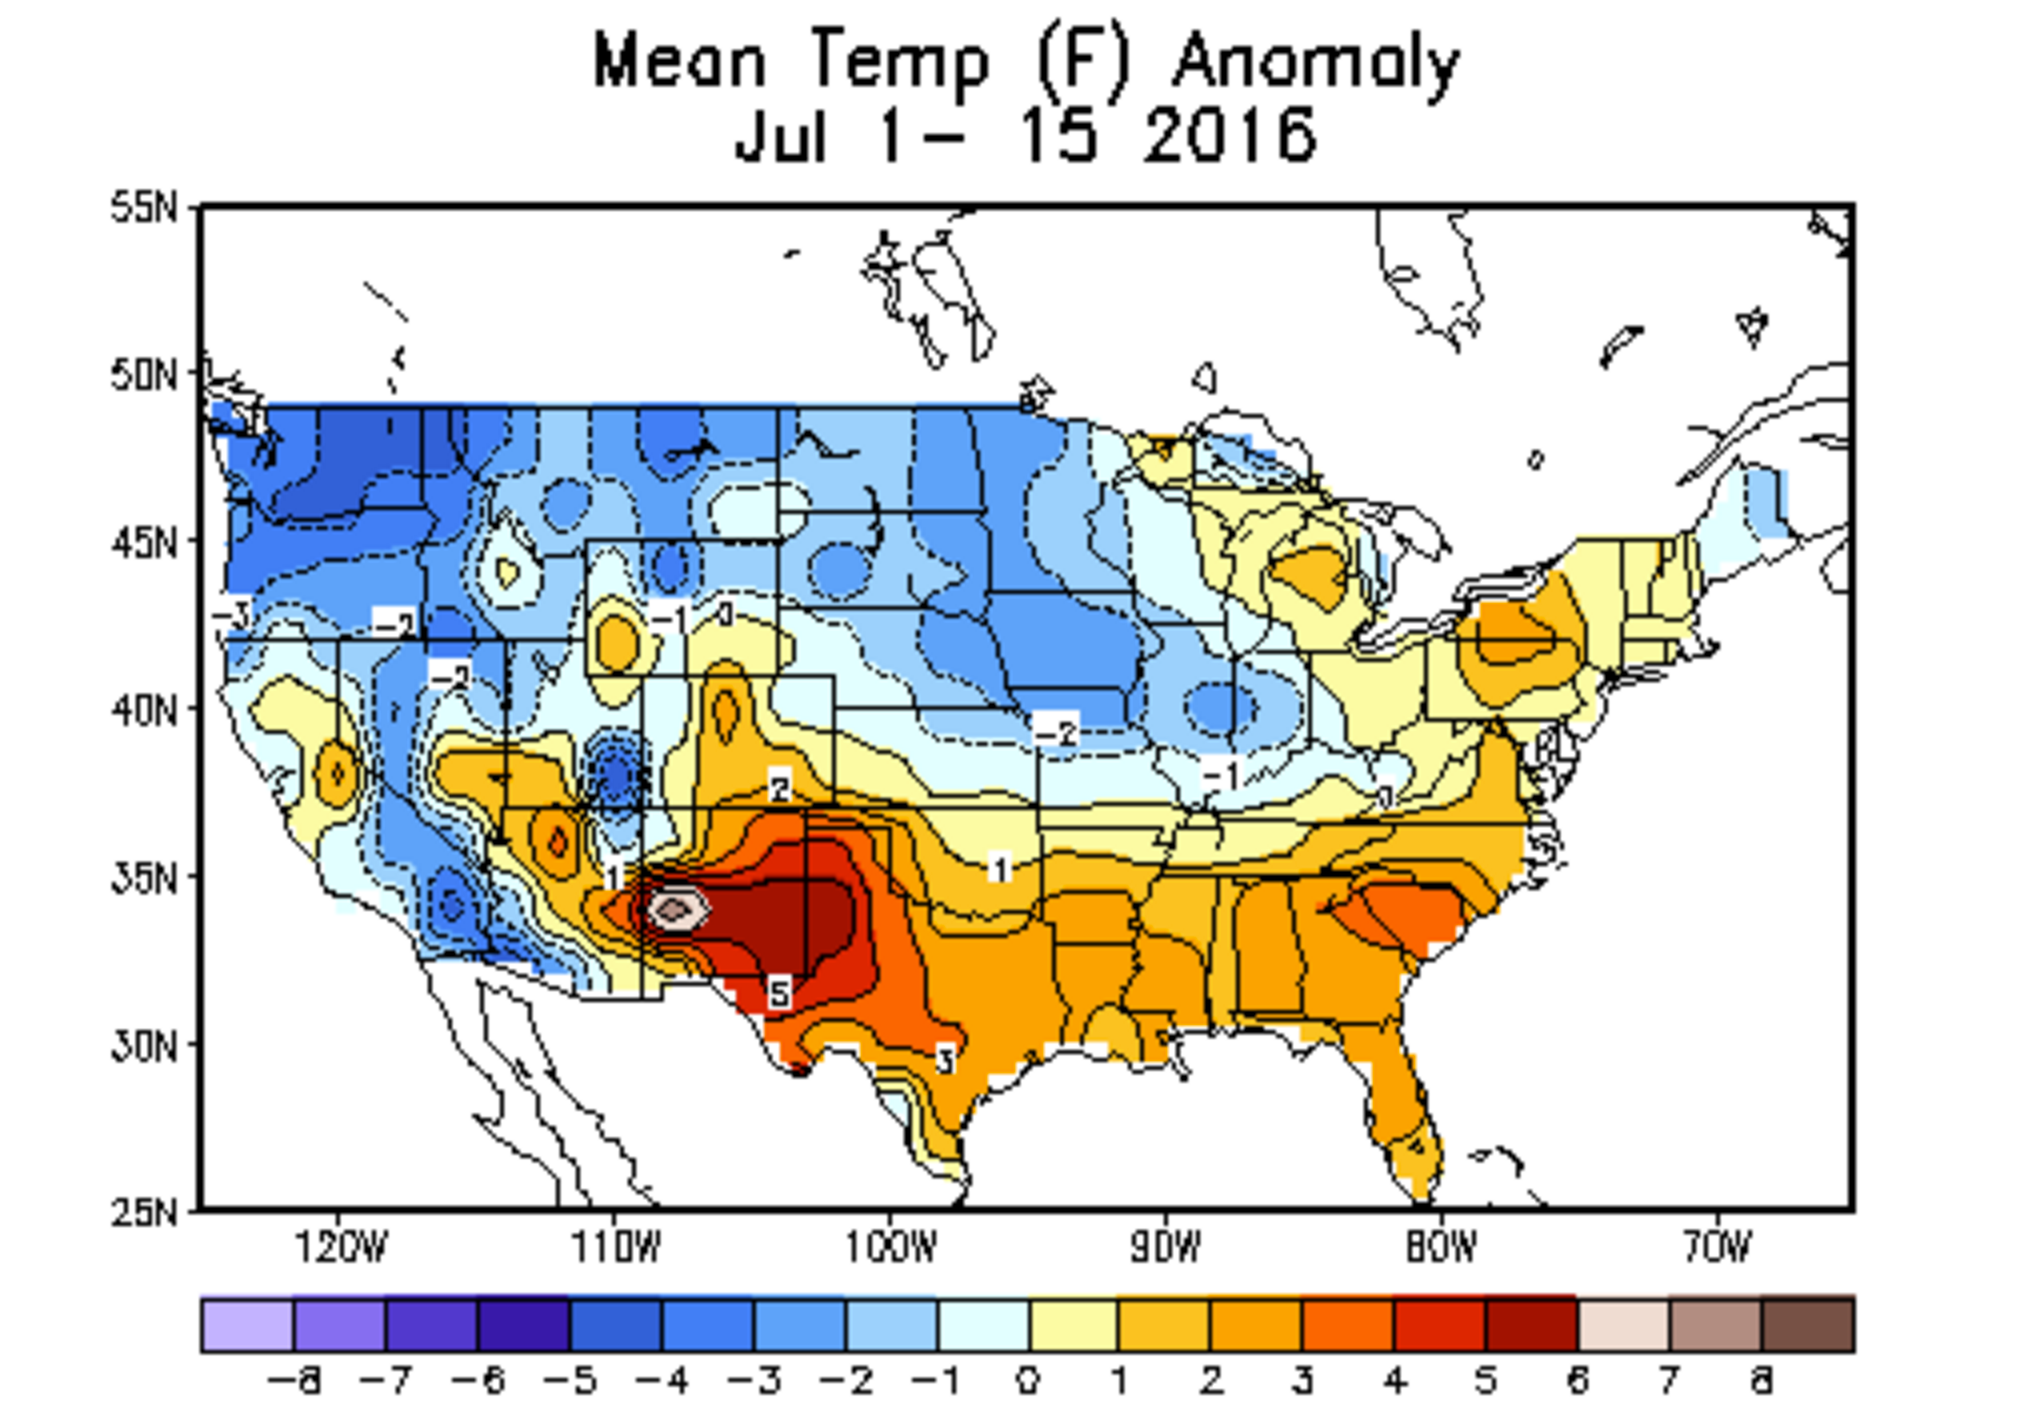 CPC month to date temperature anomalies for the United States. Warmer than average for most of central Colorado, with cooler than average temperatures across the northeast plains of the state. Near normal to slightly above normal in Denver.